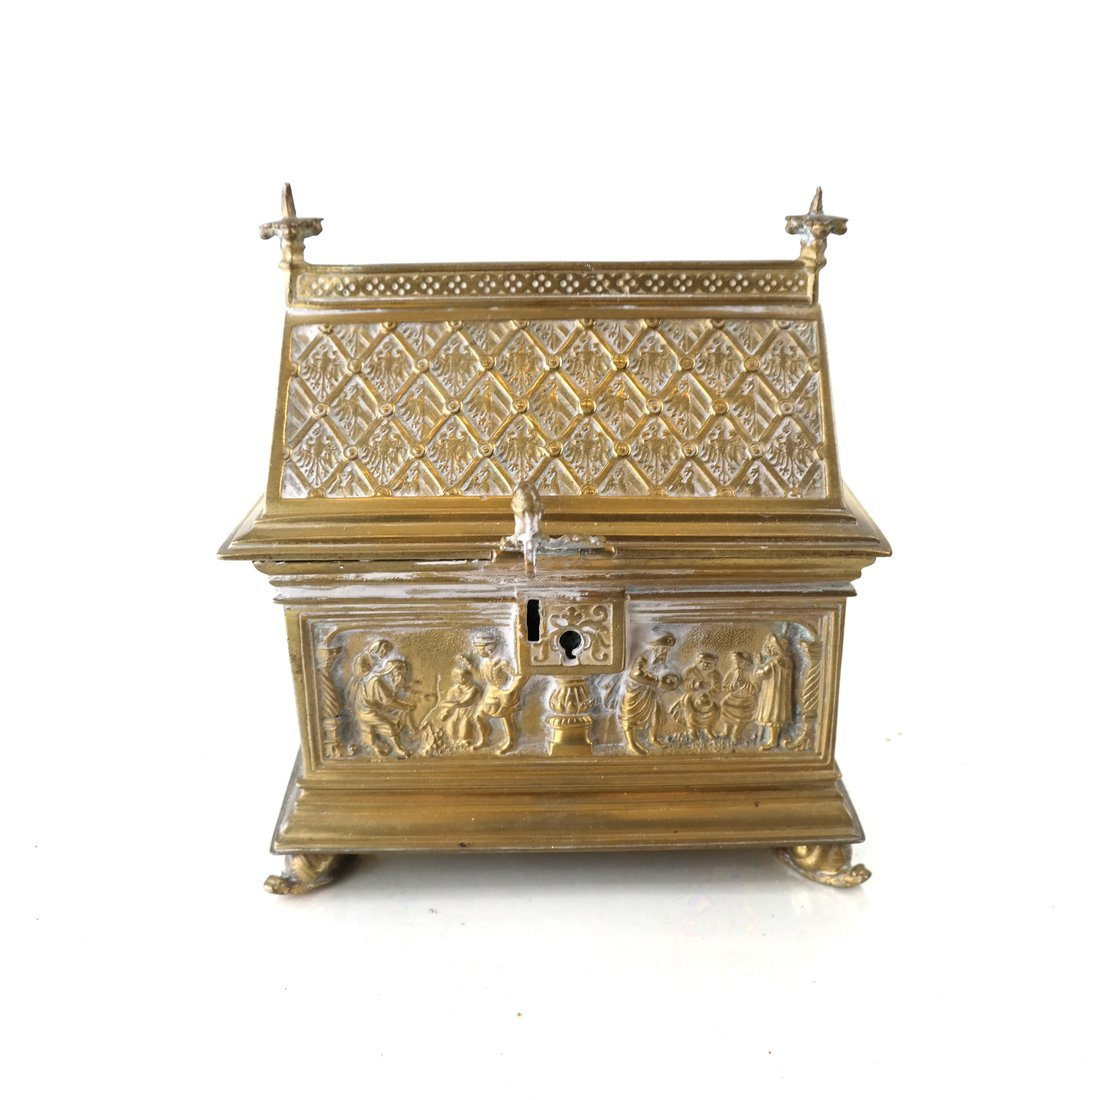 Ornate Casket Form Box - 2